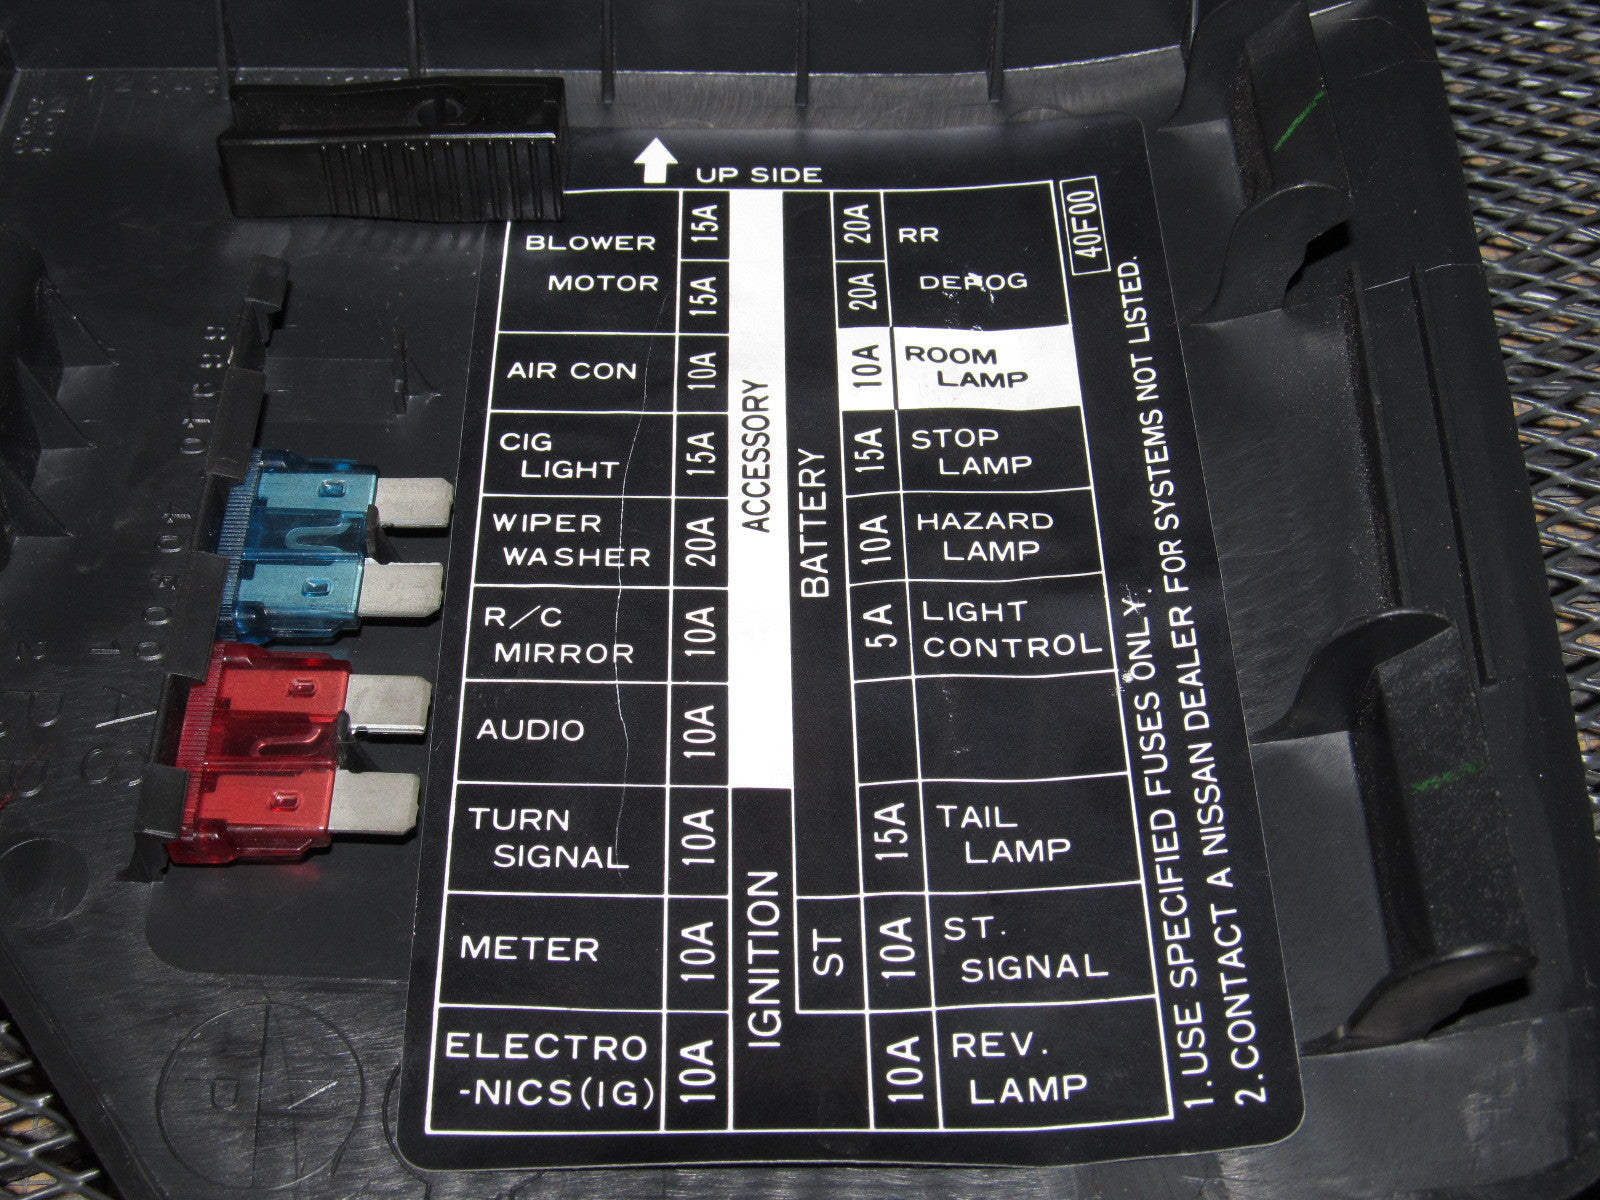 IMG_0241_bc4dfbbf 93f7 4ea2 ba97 c7ba394f9039?v\=1461893093 240sx fuse box 240sx radio fuse \u2022 wiring diagrams j squared co Under Hood Fuse Box Diagram at crackthecode.co